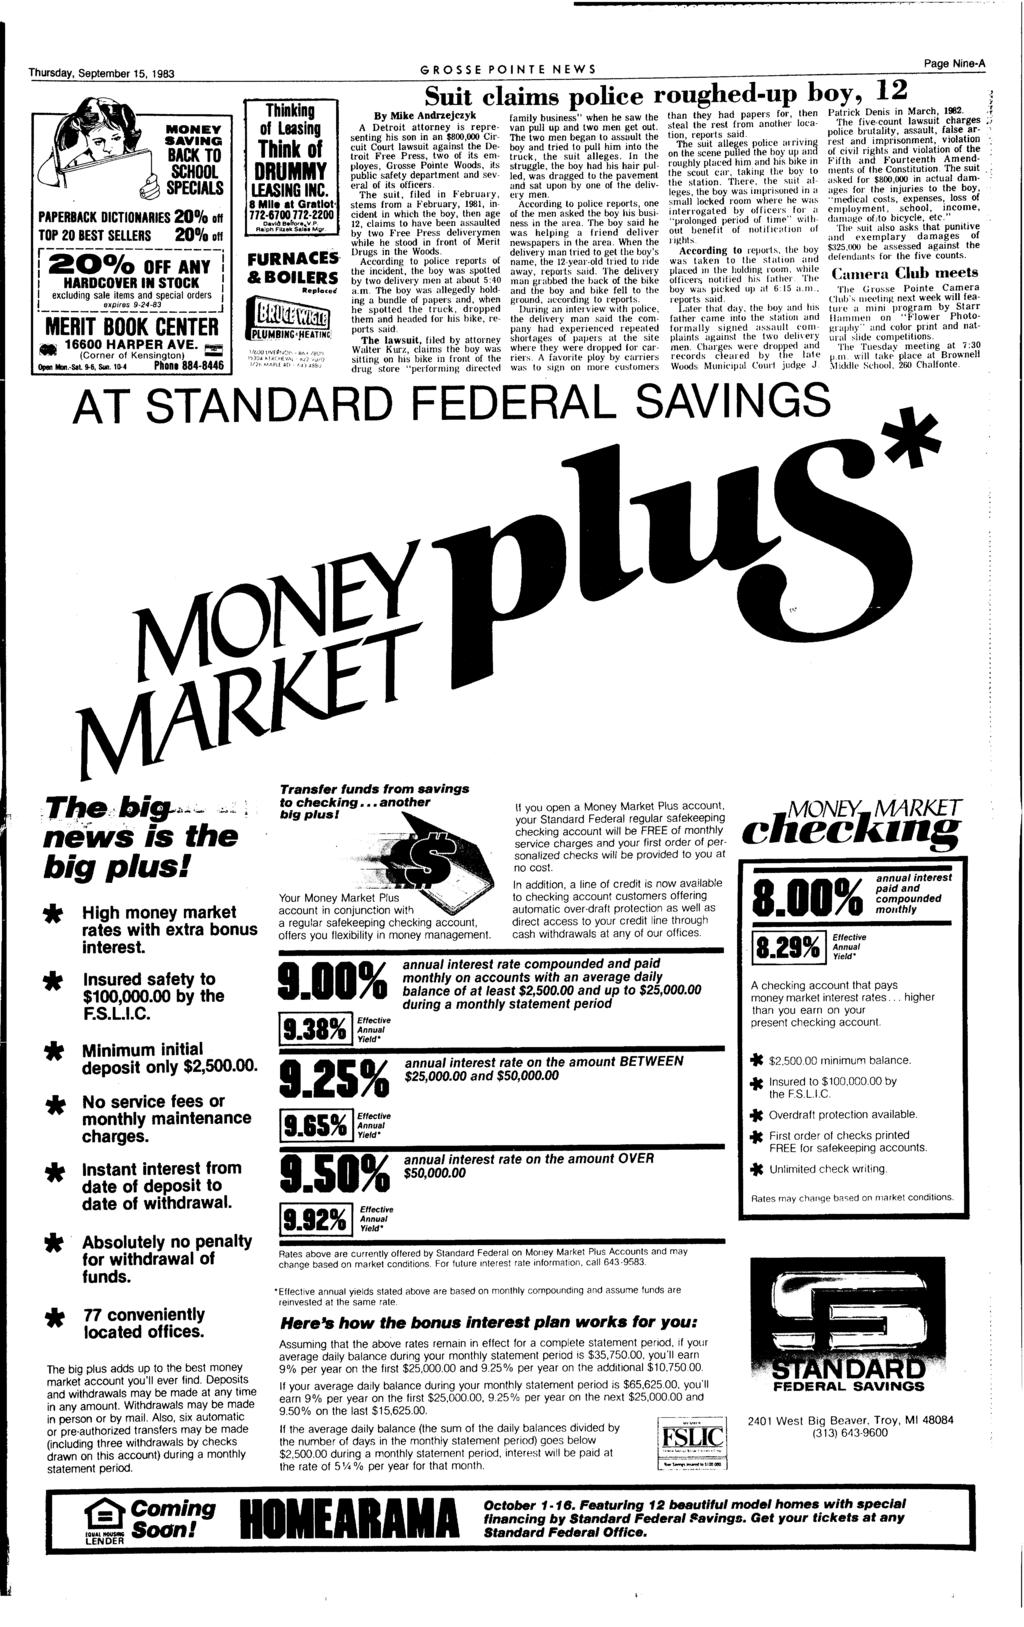 Thursday, September 15, 1983 MONEY SAVNG BACK TO SCHOOL SPECALS PAPERBACK DCTONARES 20% TOP 20 BEST SELLERS 20% off r------------------.